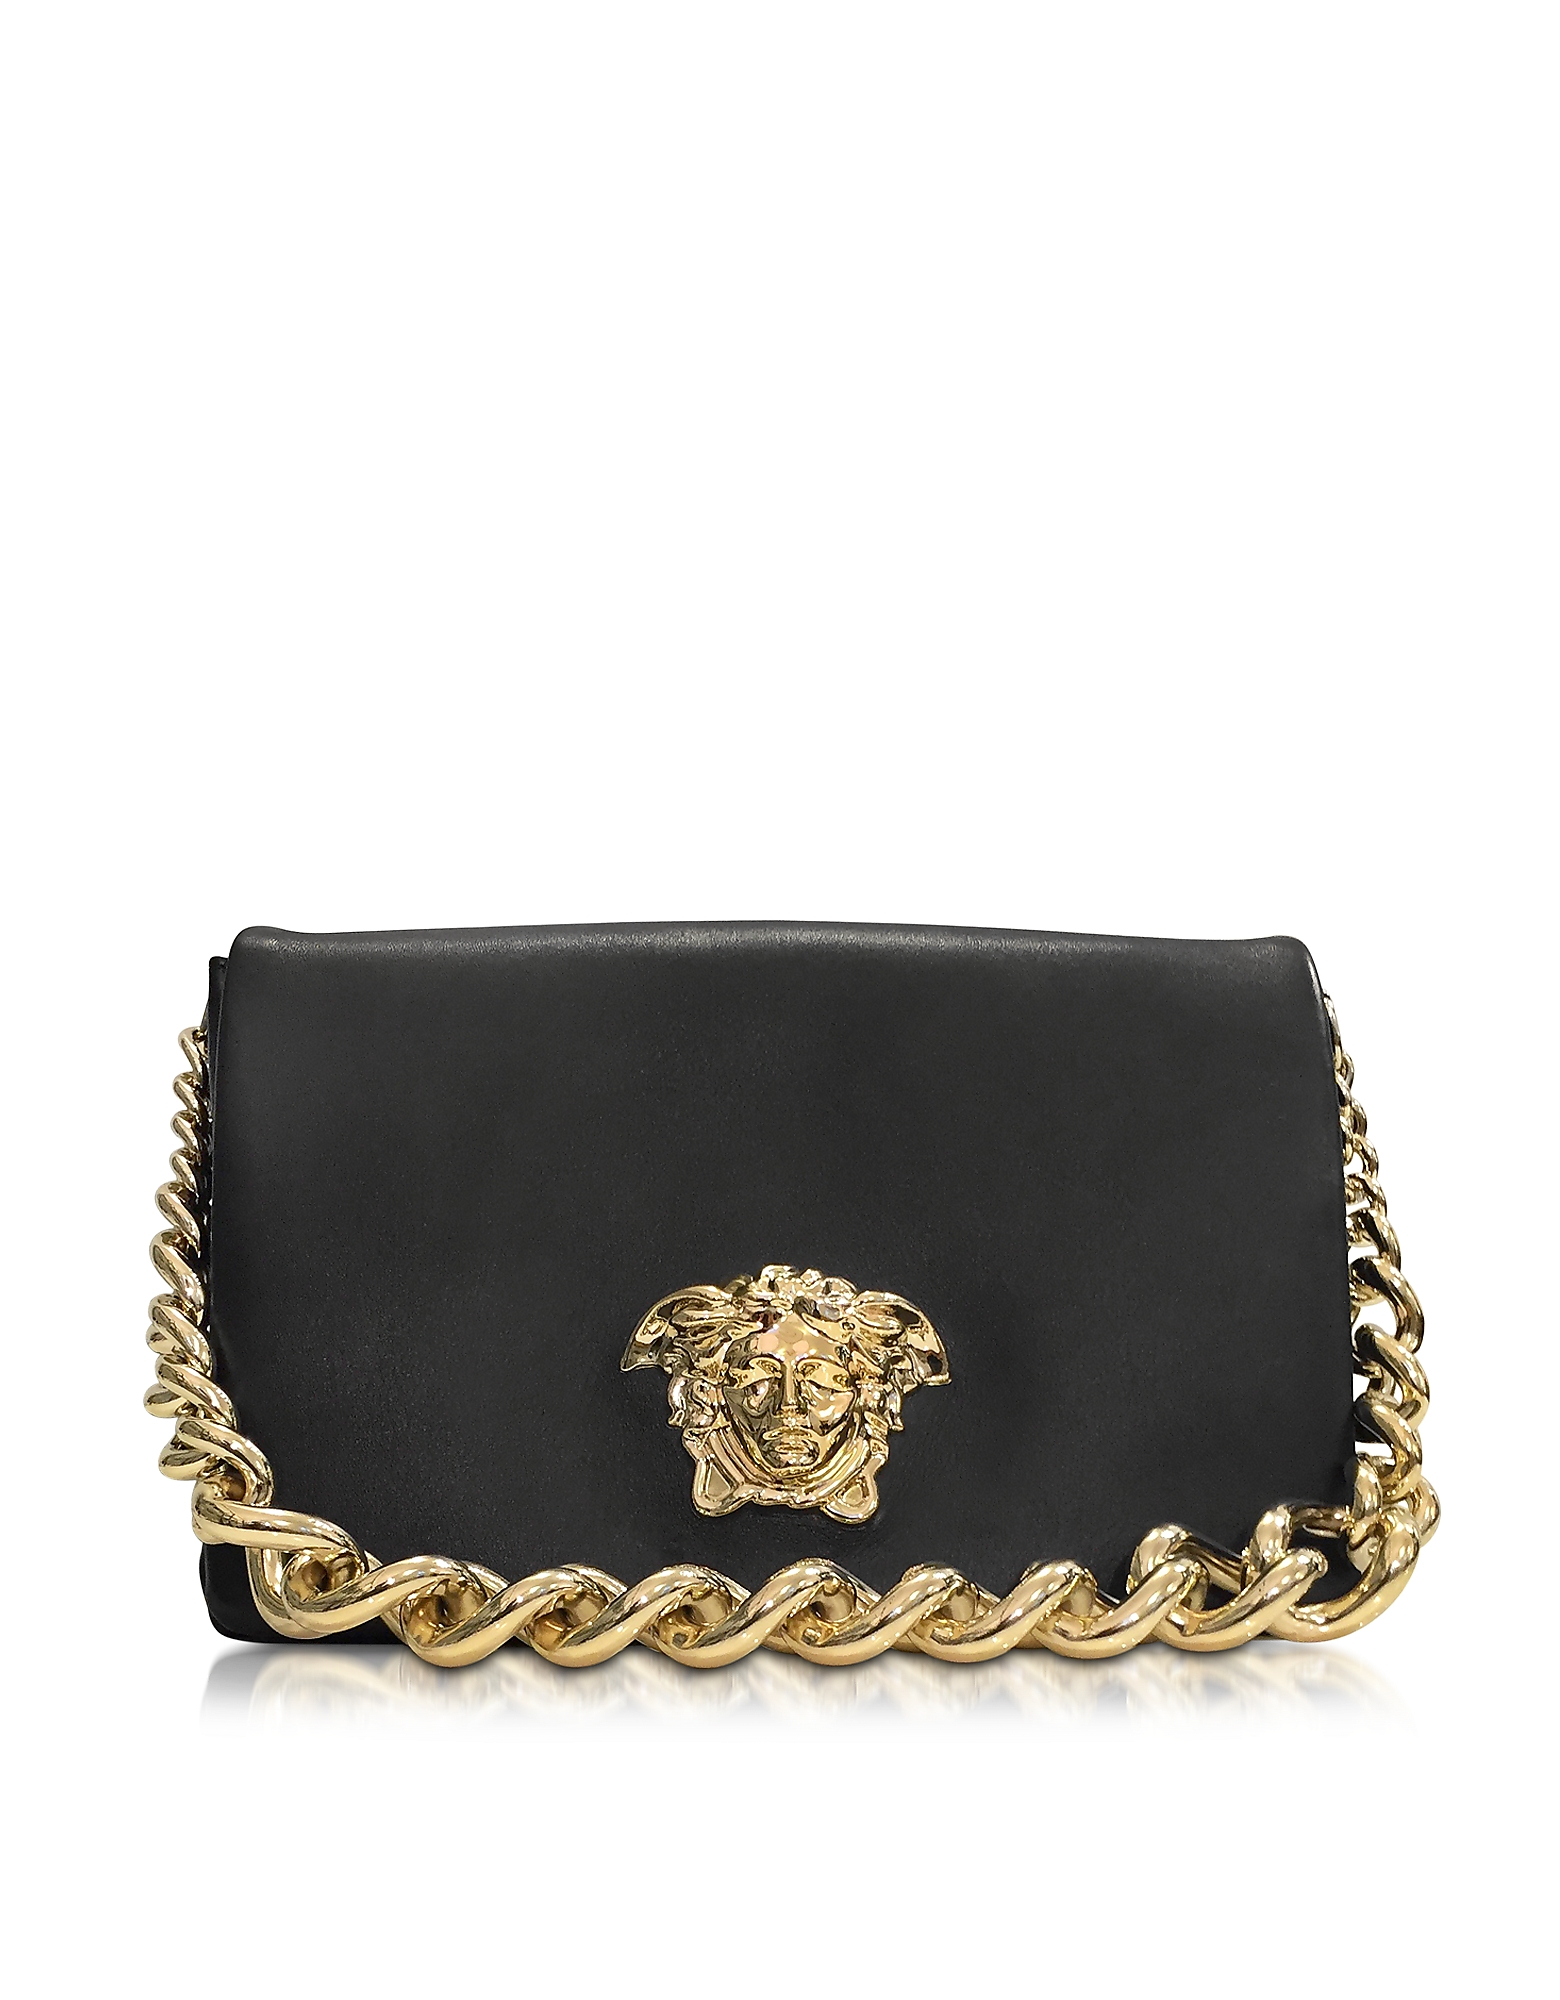 8bb74f284392 Versace Palazzo Black Shoulder Bag W golden Medusa   Chain in ...